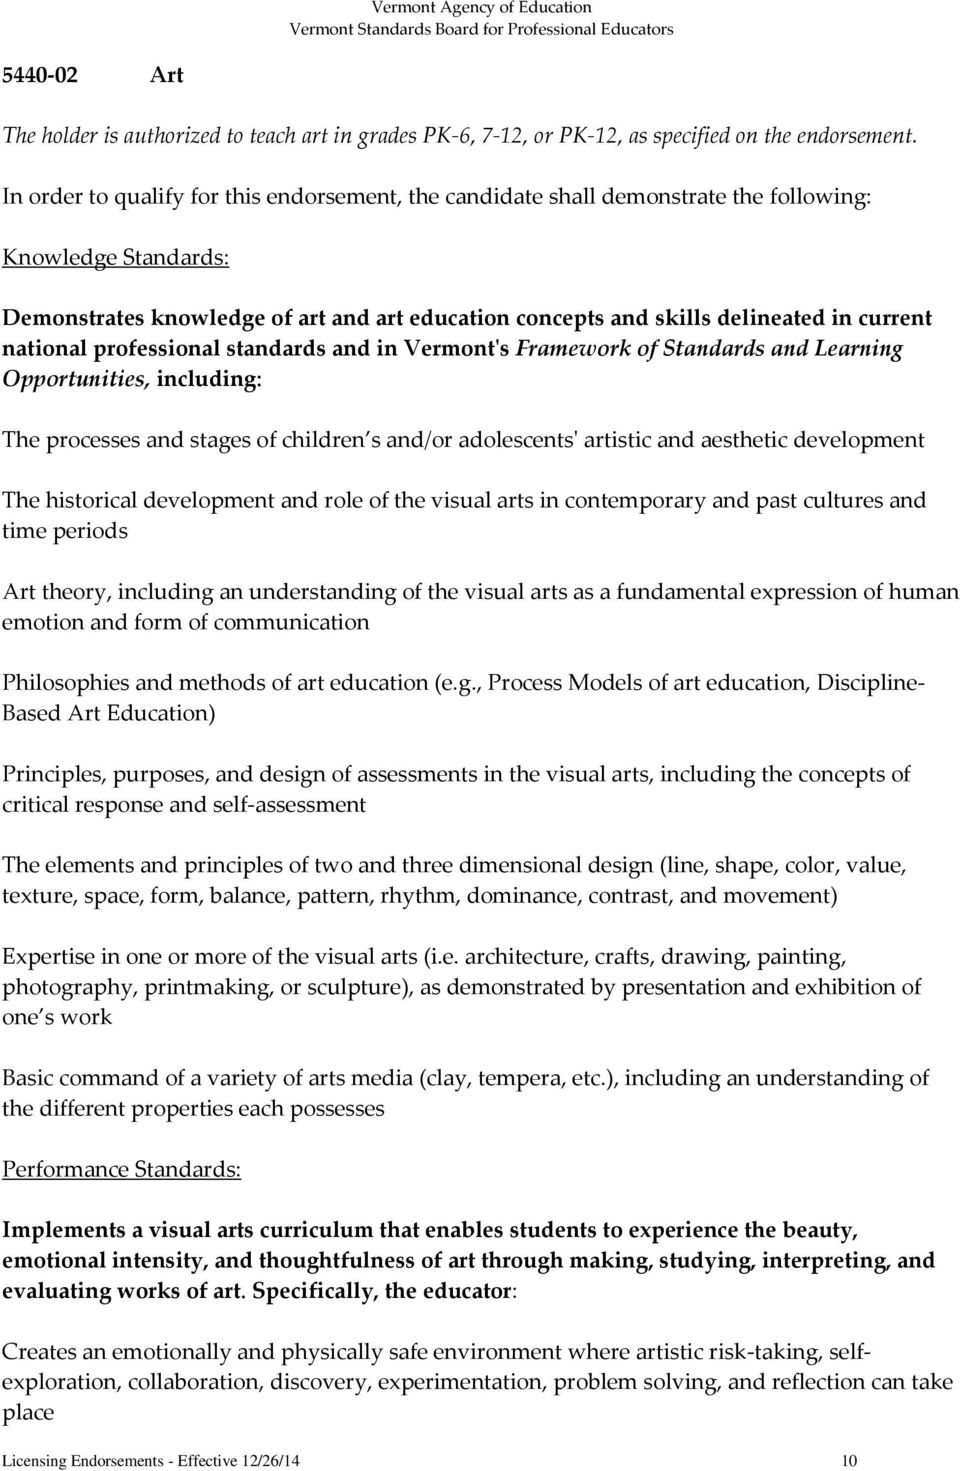 national professional standards and in Vermont's Framework of Standards and Learning Opportunities, including: The processes and stages of children s and/or adolescents' artistic and aesthetic